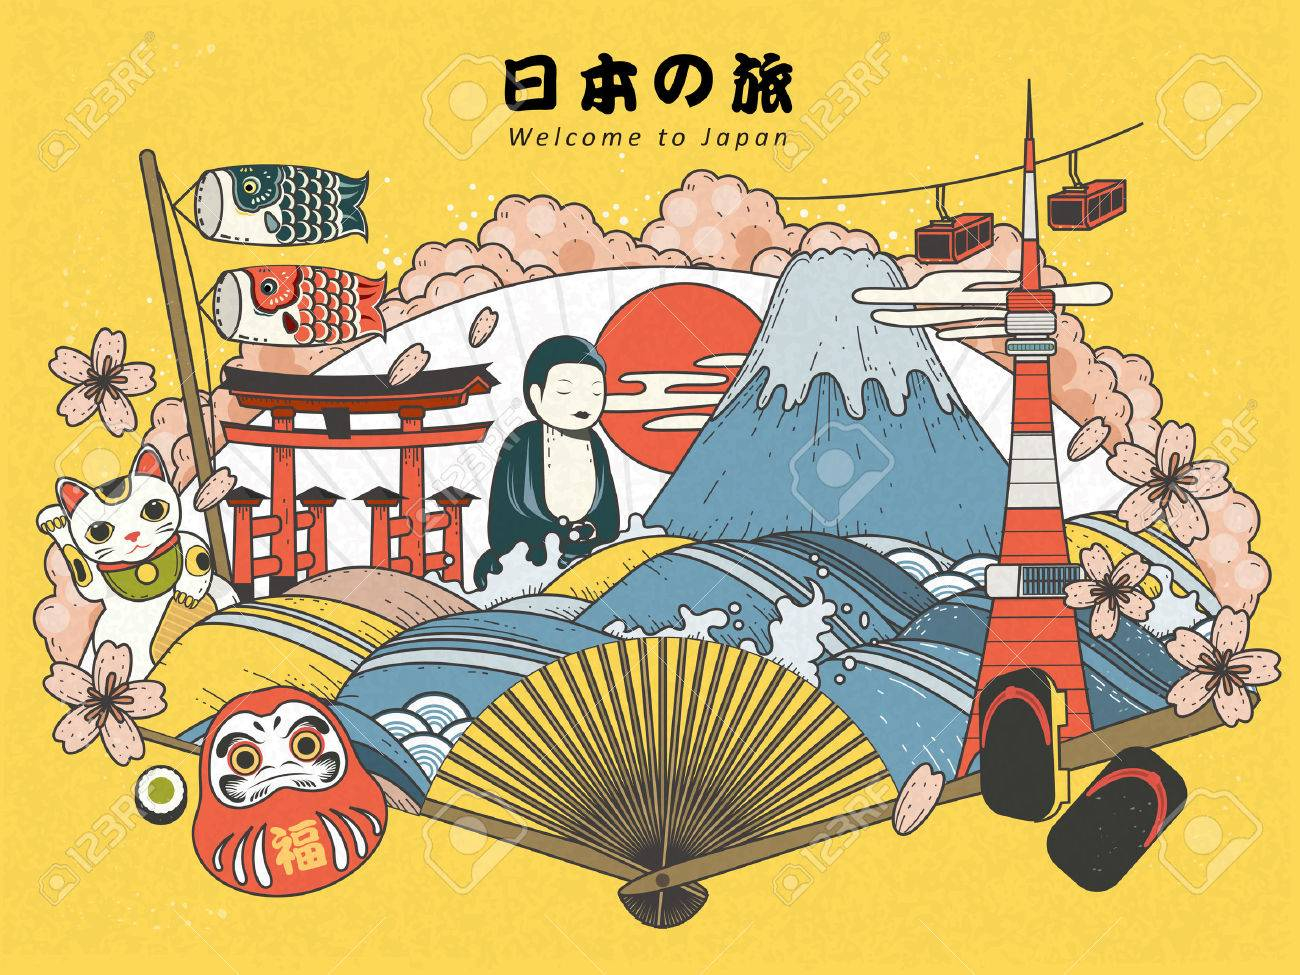 Japan Tourism Poster Design With Attractions Japan Travel In Royalty Free Cliparts Vectors And Stock Illustration Image 59302138